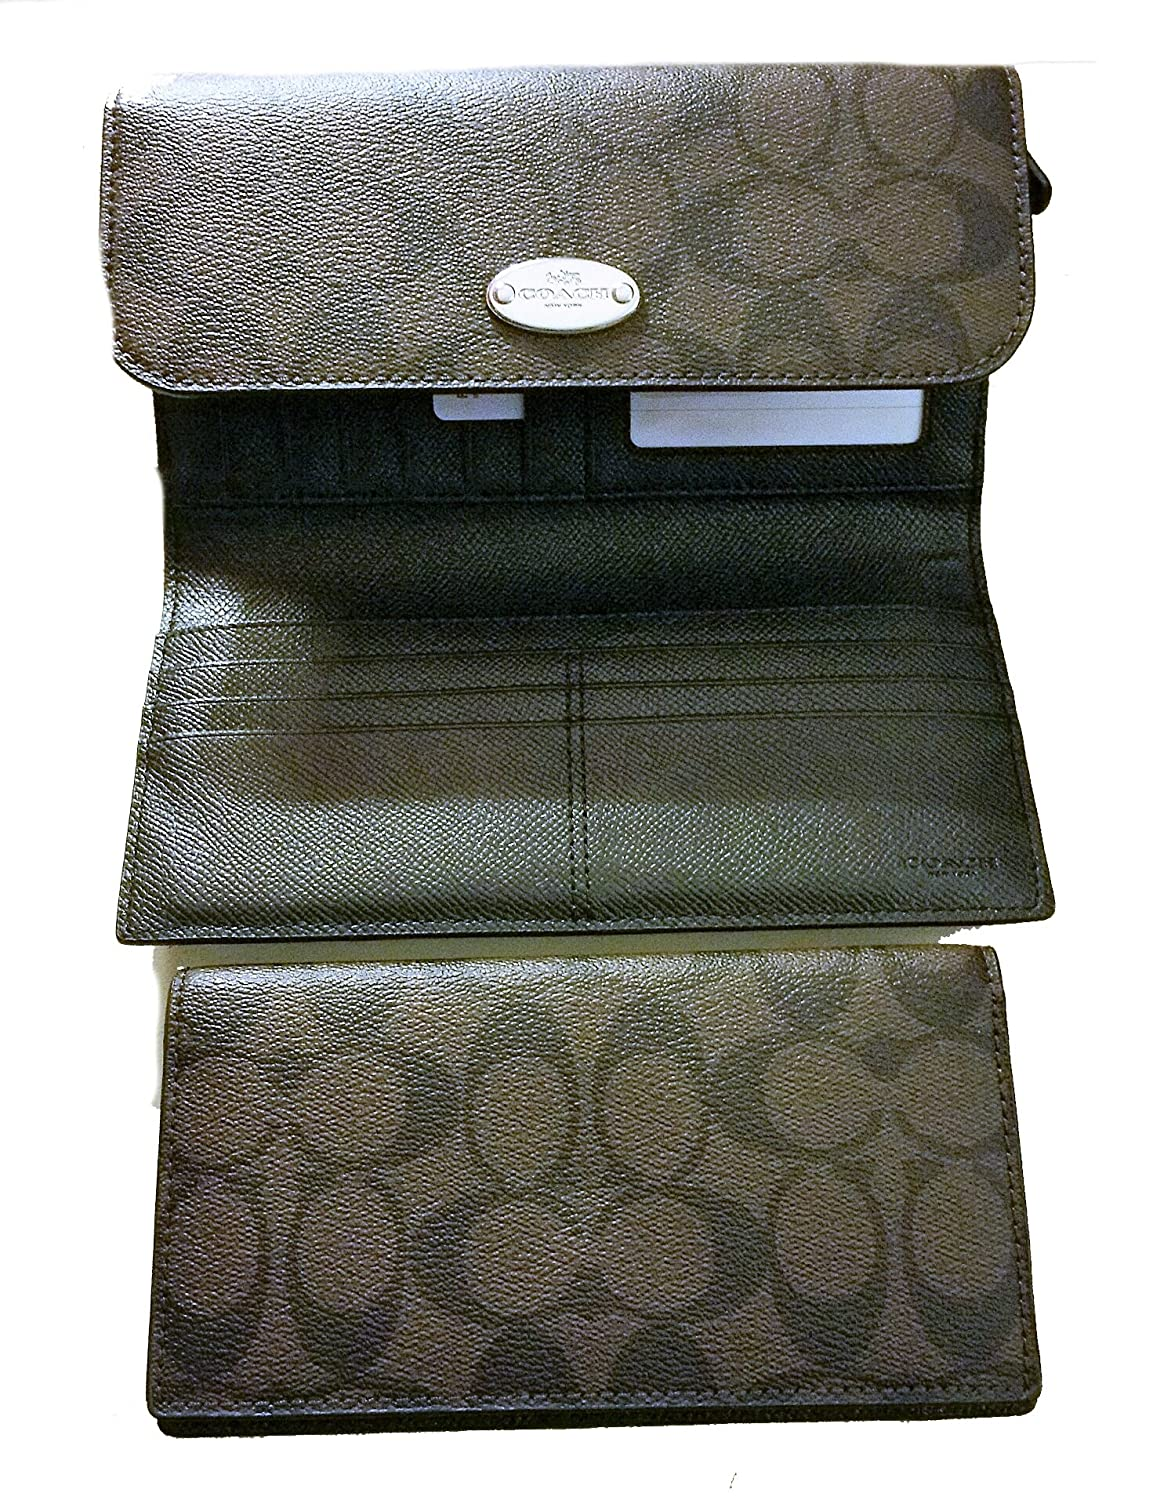 98bdf30cd2679 Coach Signature PVC Coated Canvas Checkbook Wallet F52681 Dark Brown   Amazon.co.uk  Shoes   Bags